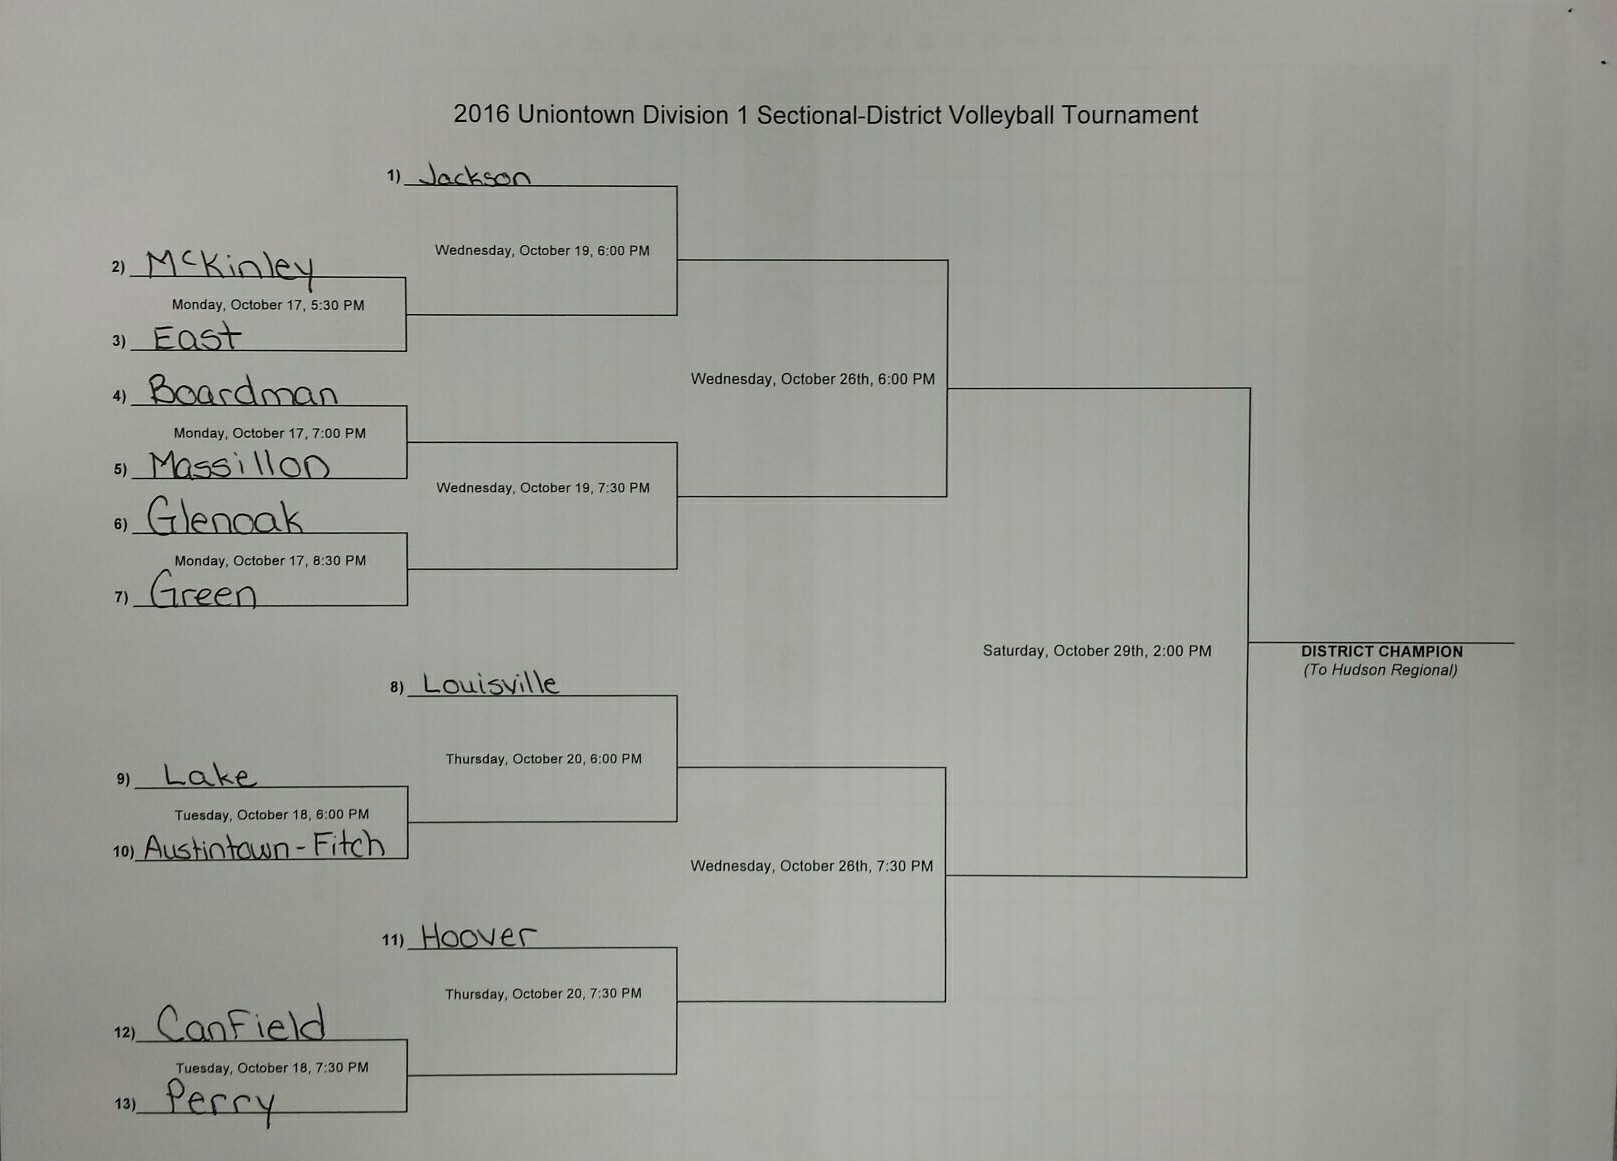 DI Uniontown District Volleyball Tournament Bracket 2016